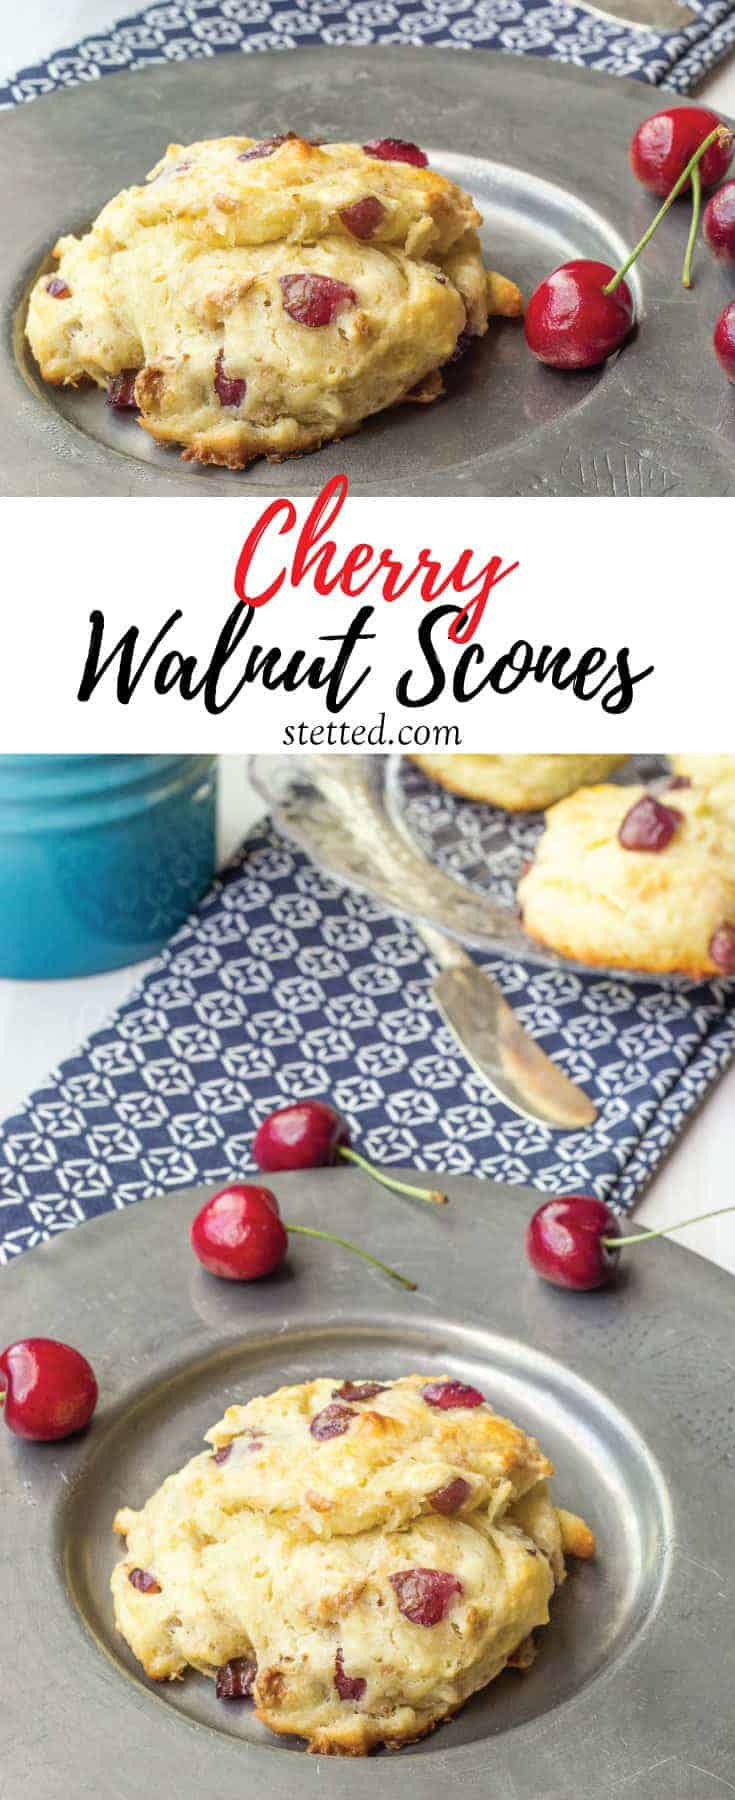 Cherry walnut scones are the ideal summer breakfast treat. Tender and lightly sweet, all they need is a swipe of butter.